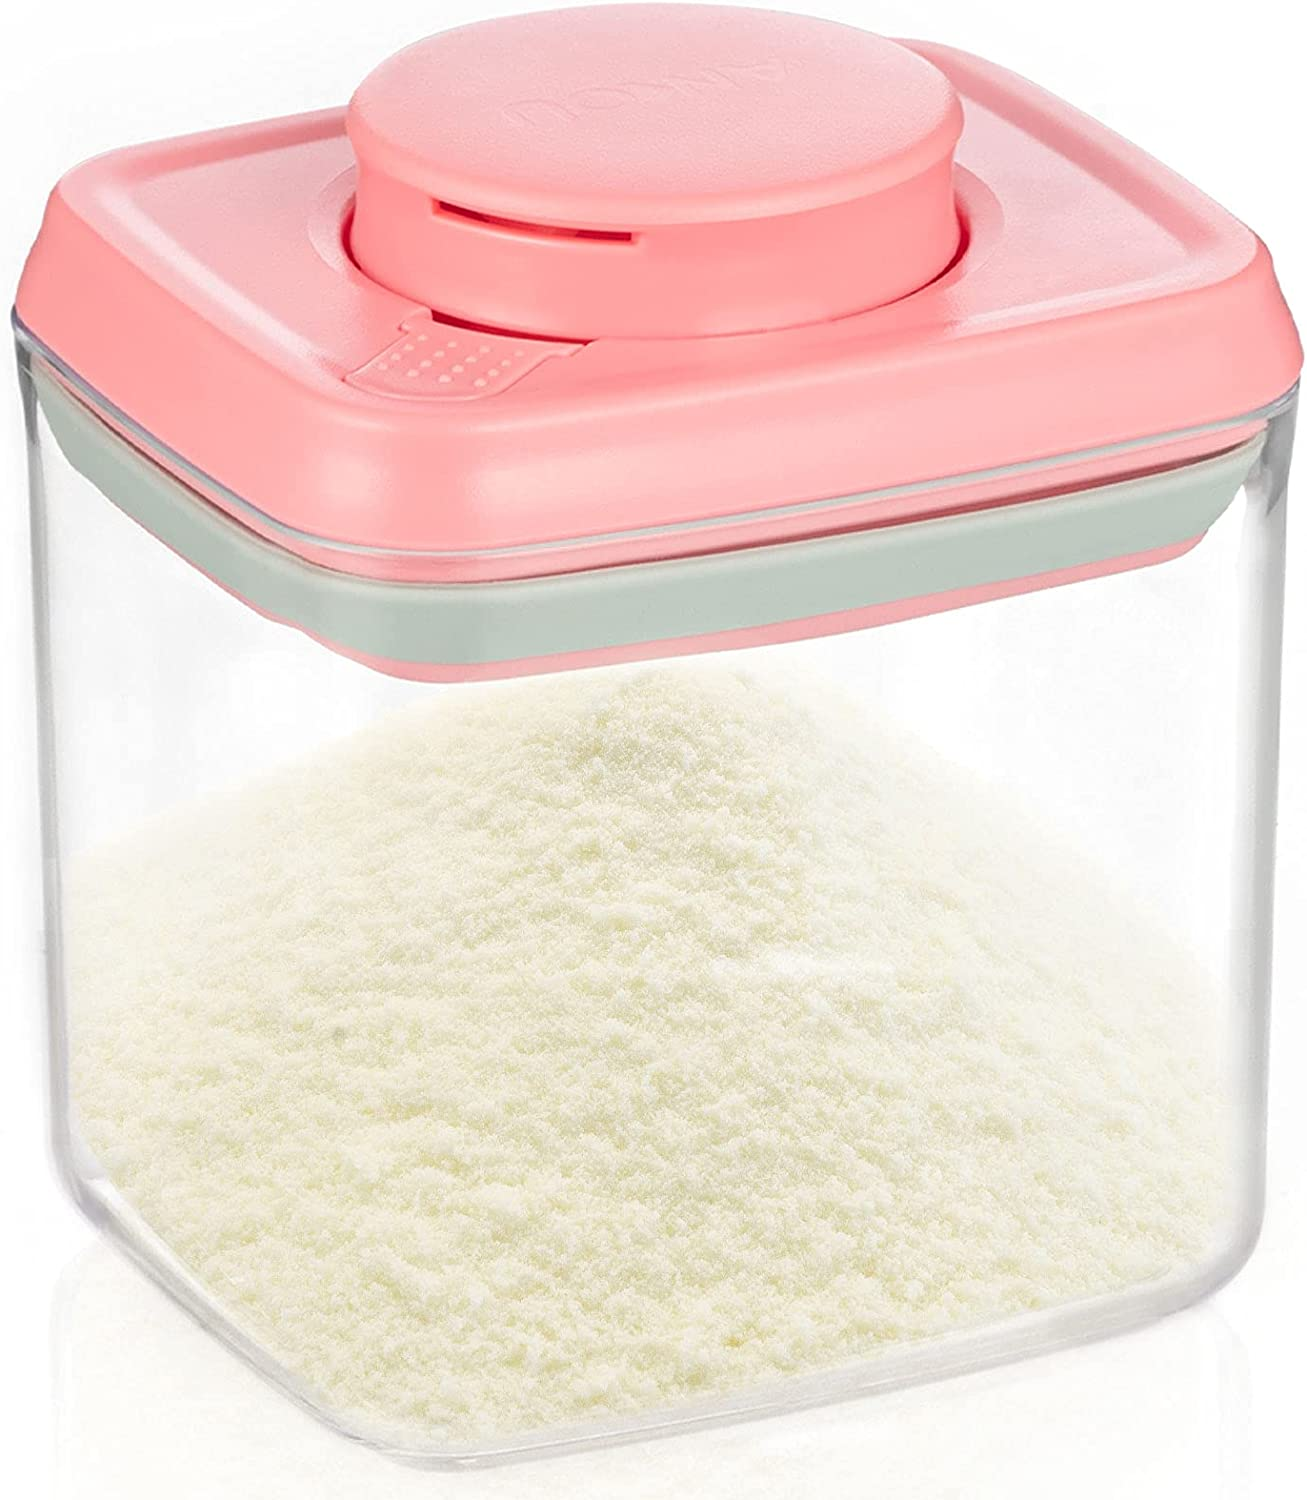 COSYLAND Ankou 0.32 Qt Push-Button Airtight Seal Container Food Storage with Seal Lids, Push-Open&Close Pack Kitchen Pantry Organization for Spices, Cereal, Flour, Sugar, Pink